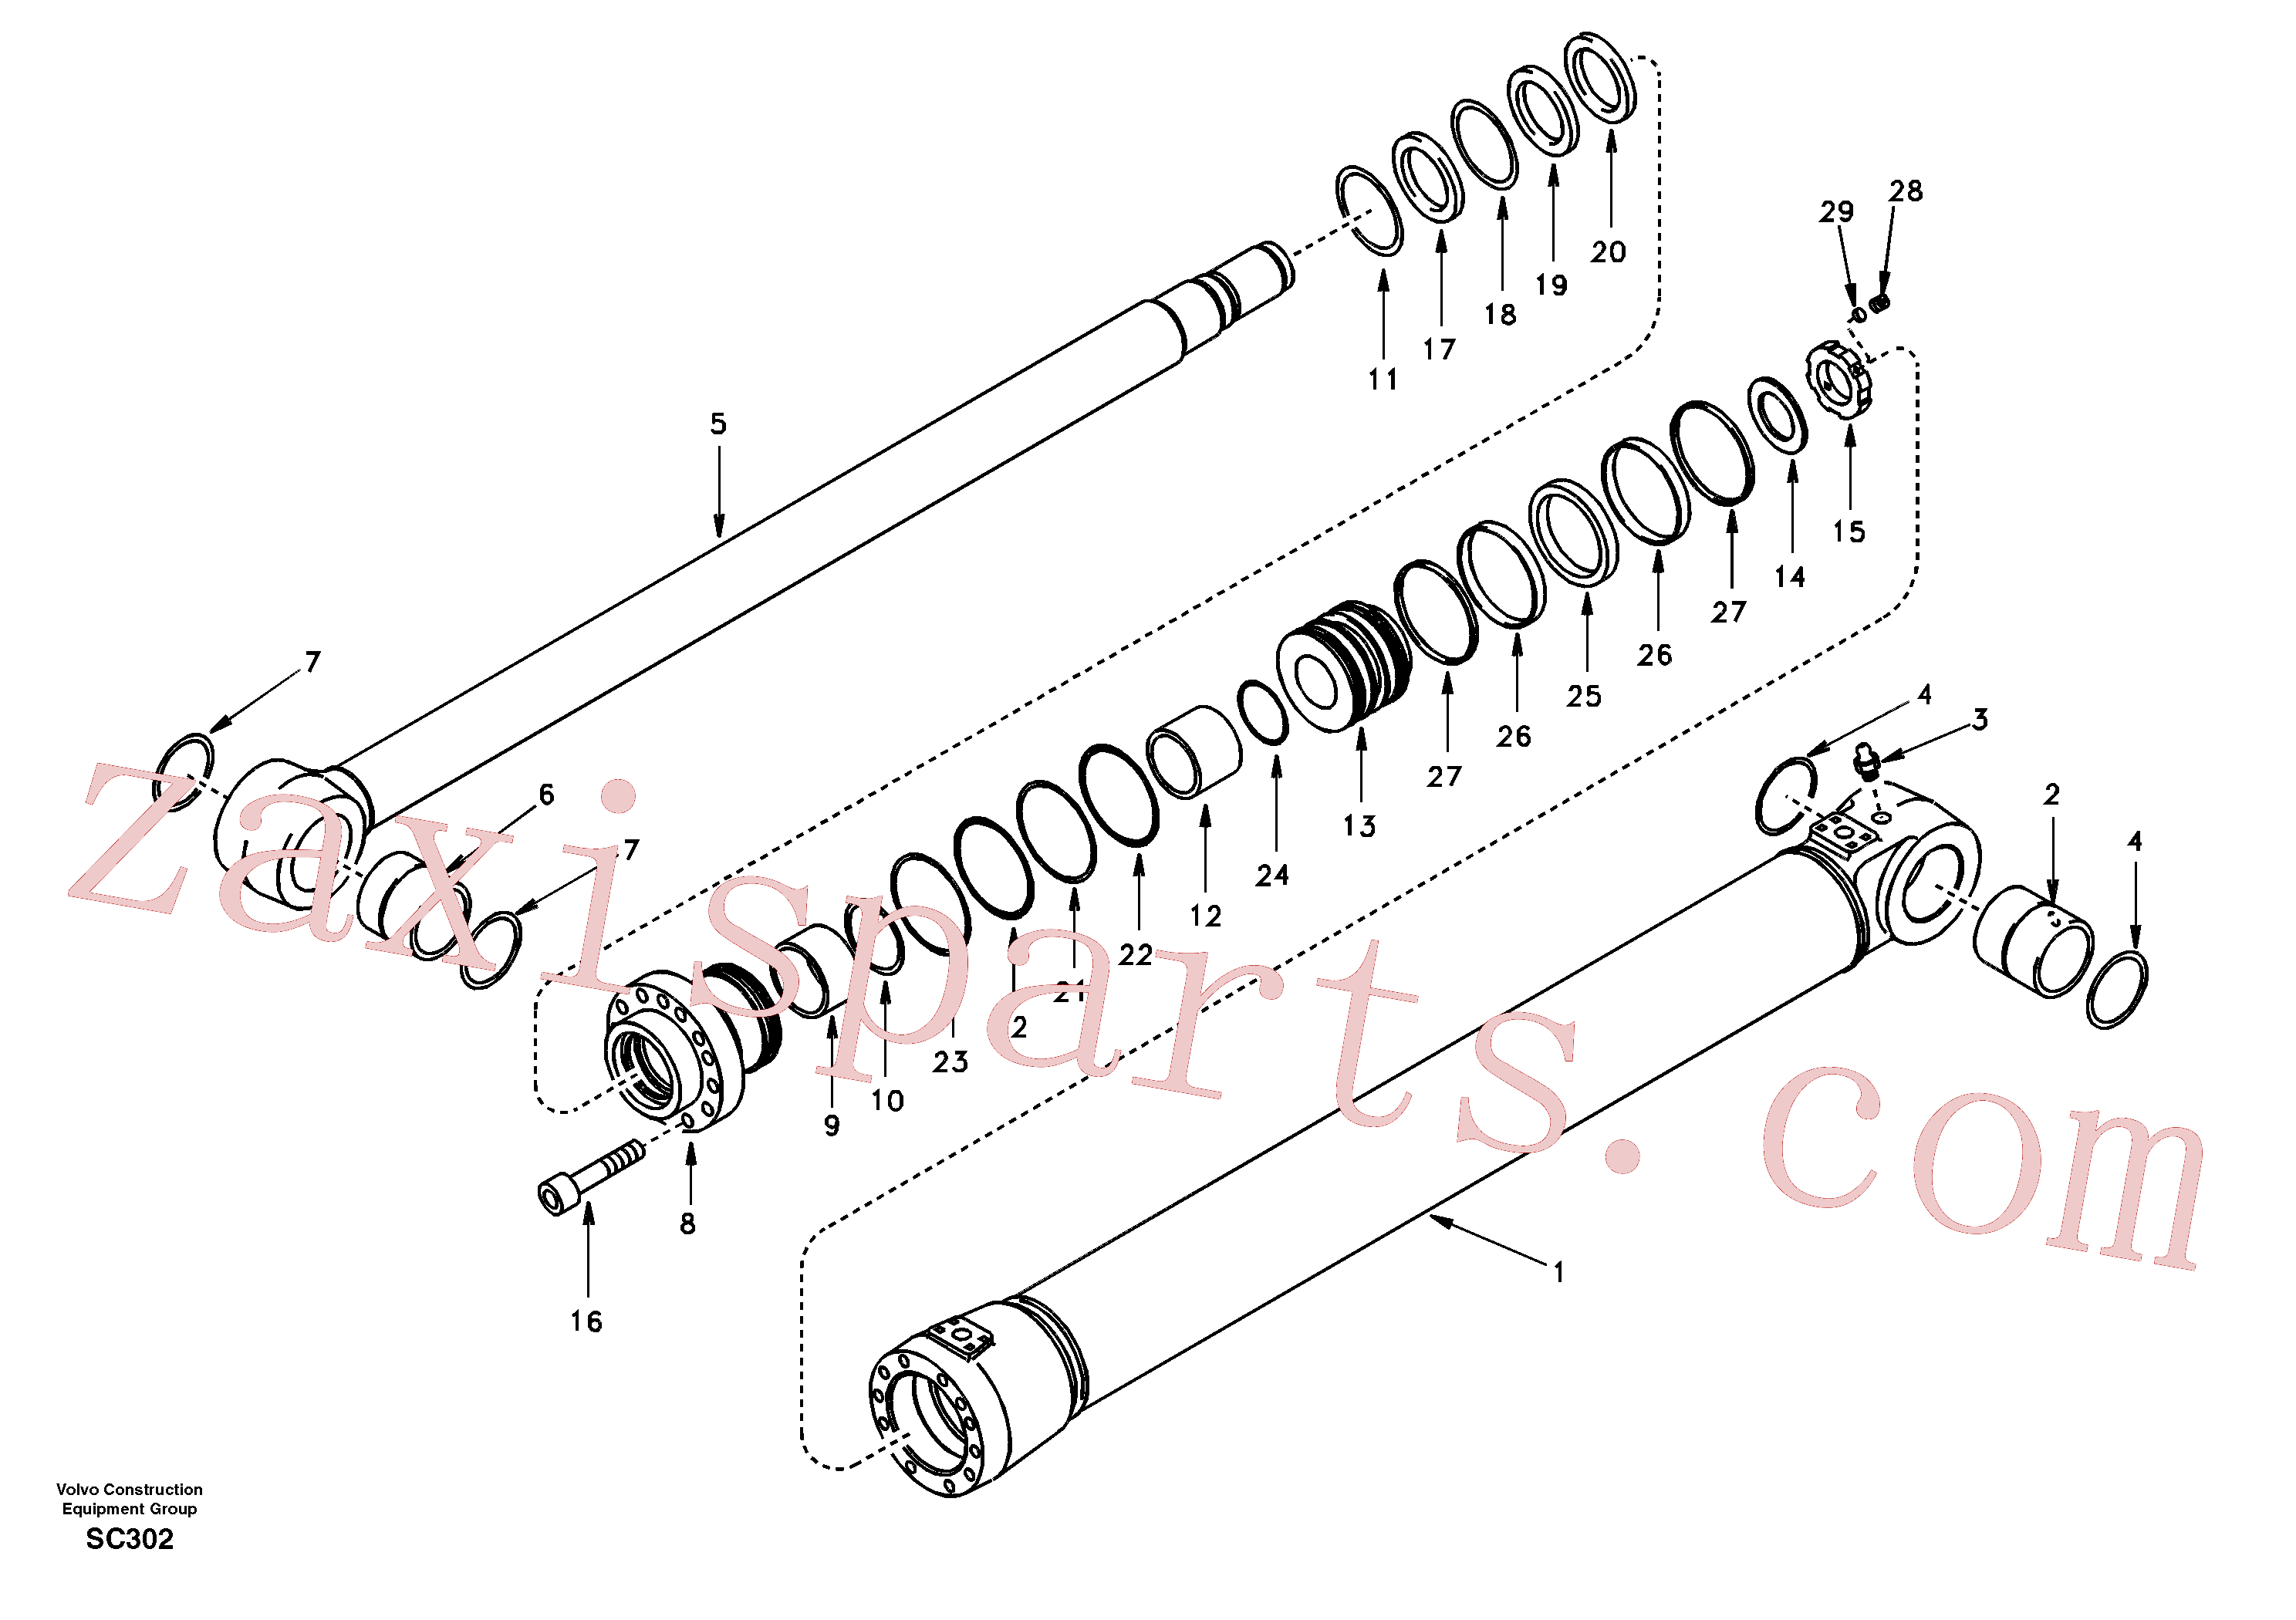 SA14501134 for Volvo Boom cylinder(SC302 assembly)